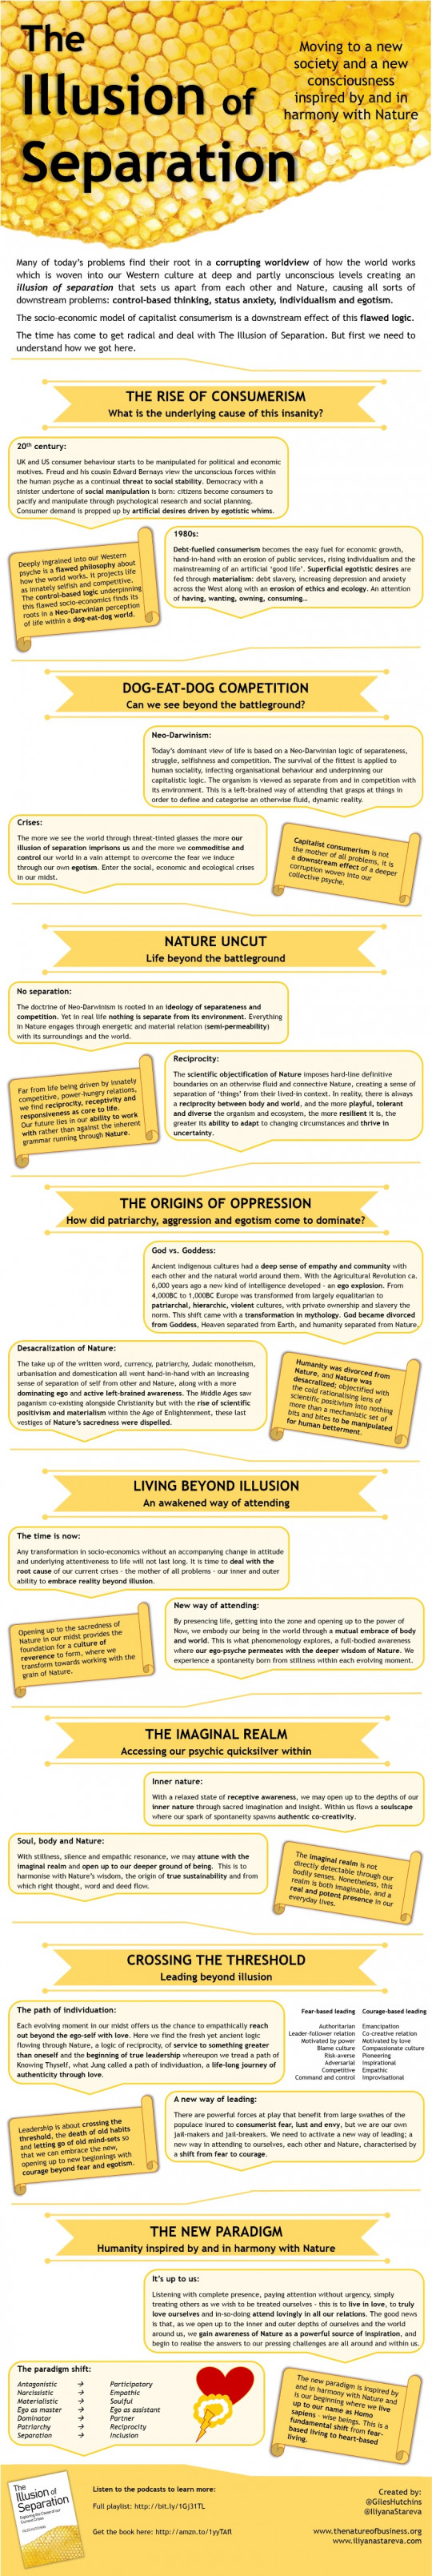 The Illusion of Separation [Infographic]